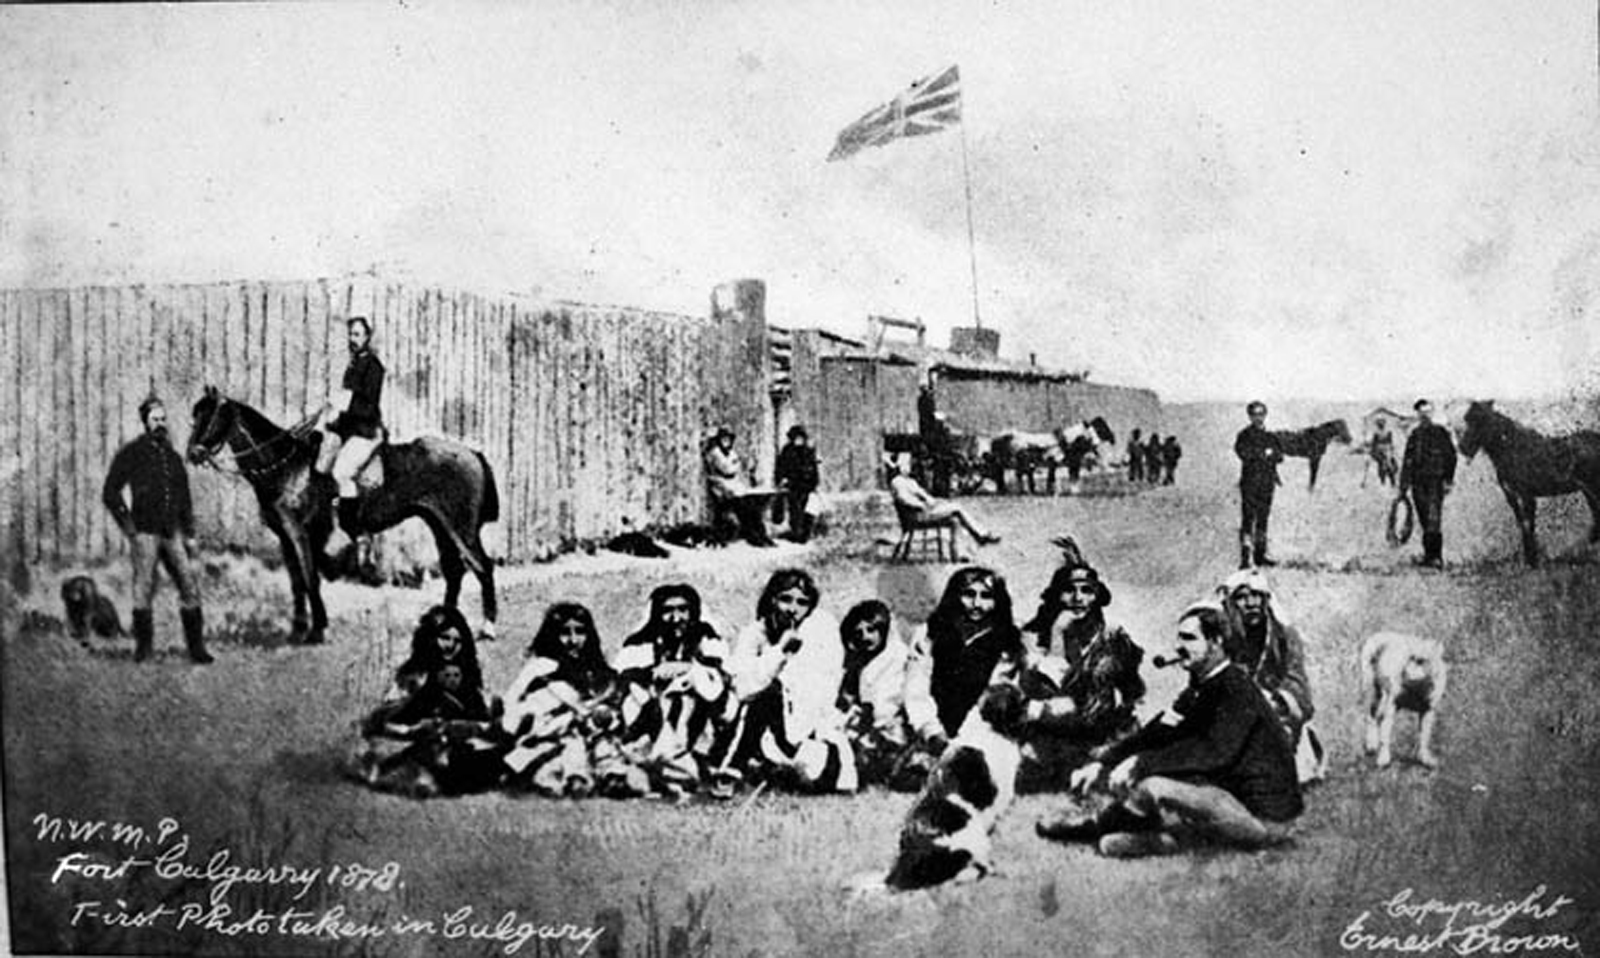 Mounted police and members of the Blackfoot First Nation at Fort Calgary, 1878. Library and Archives Canada / C-008200